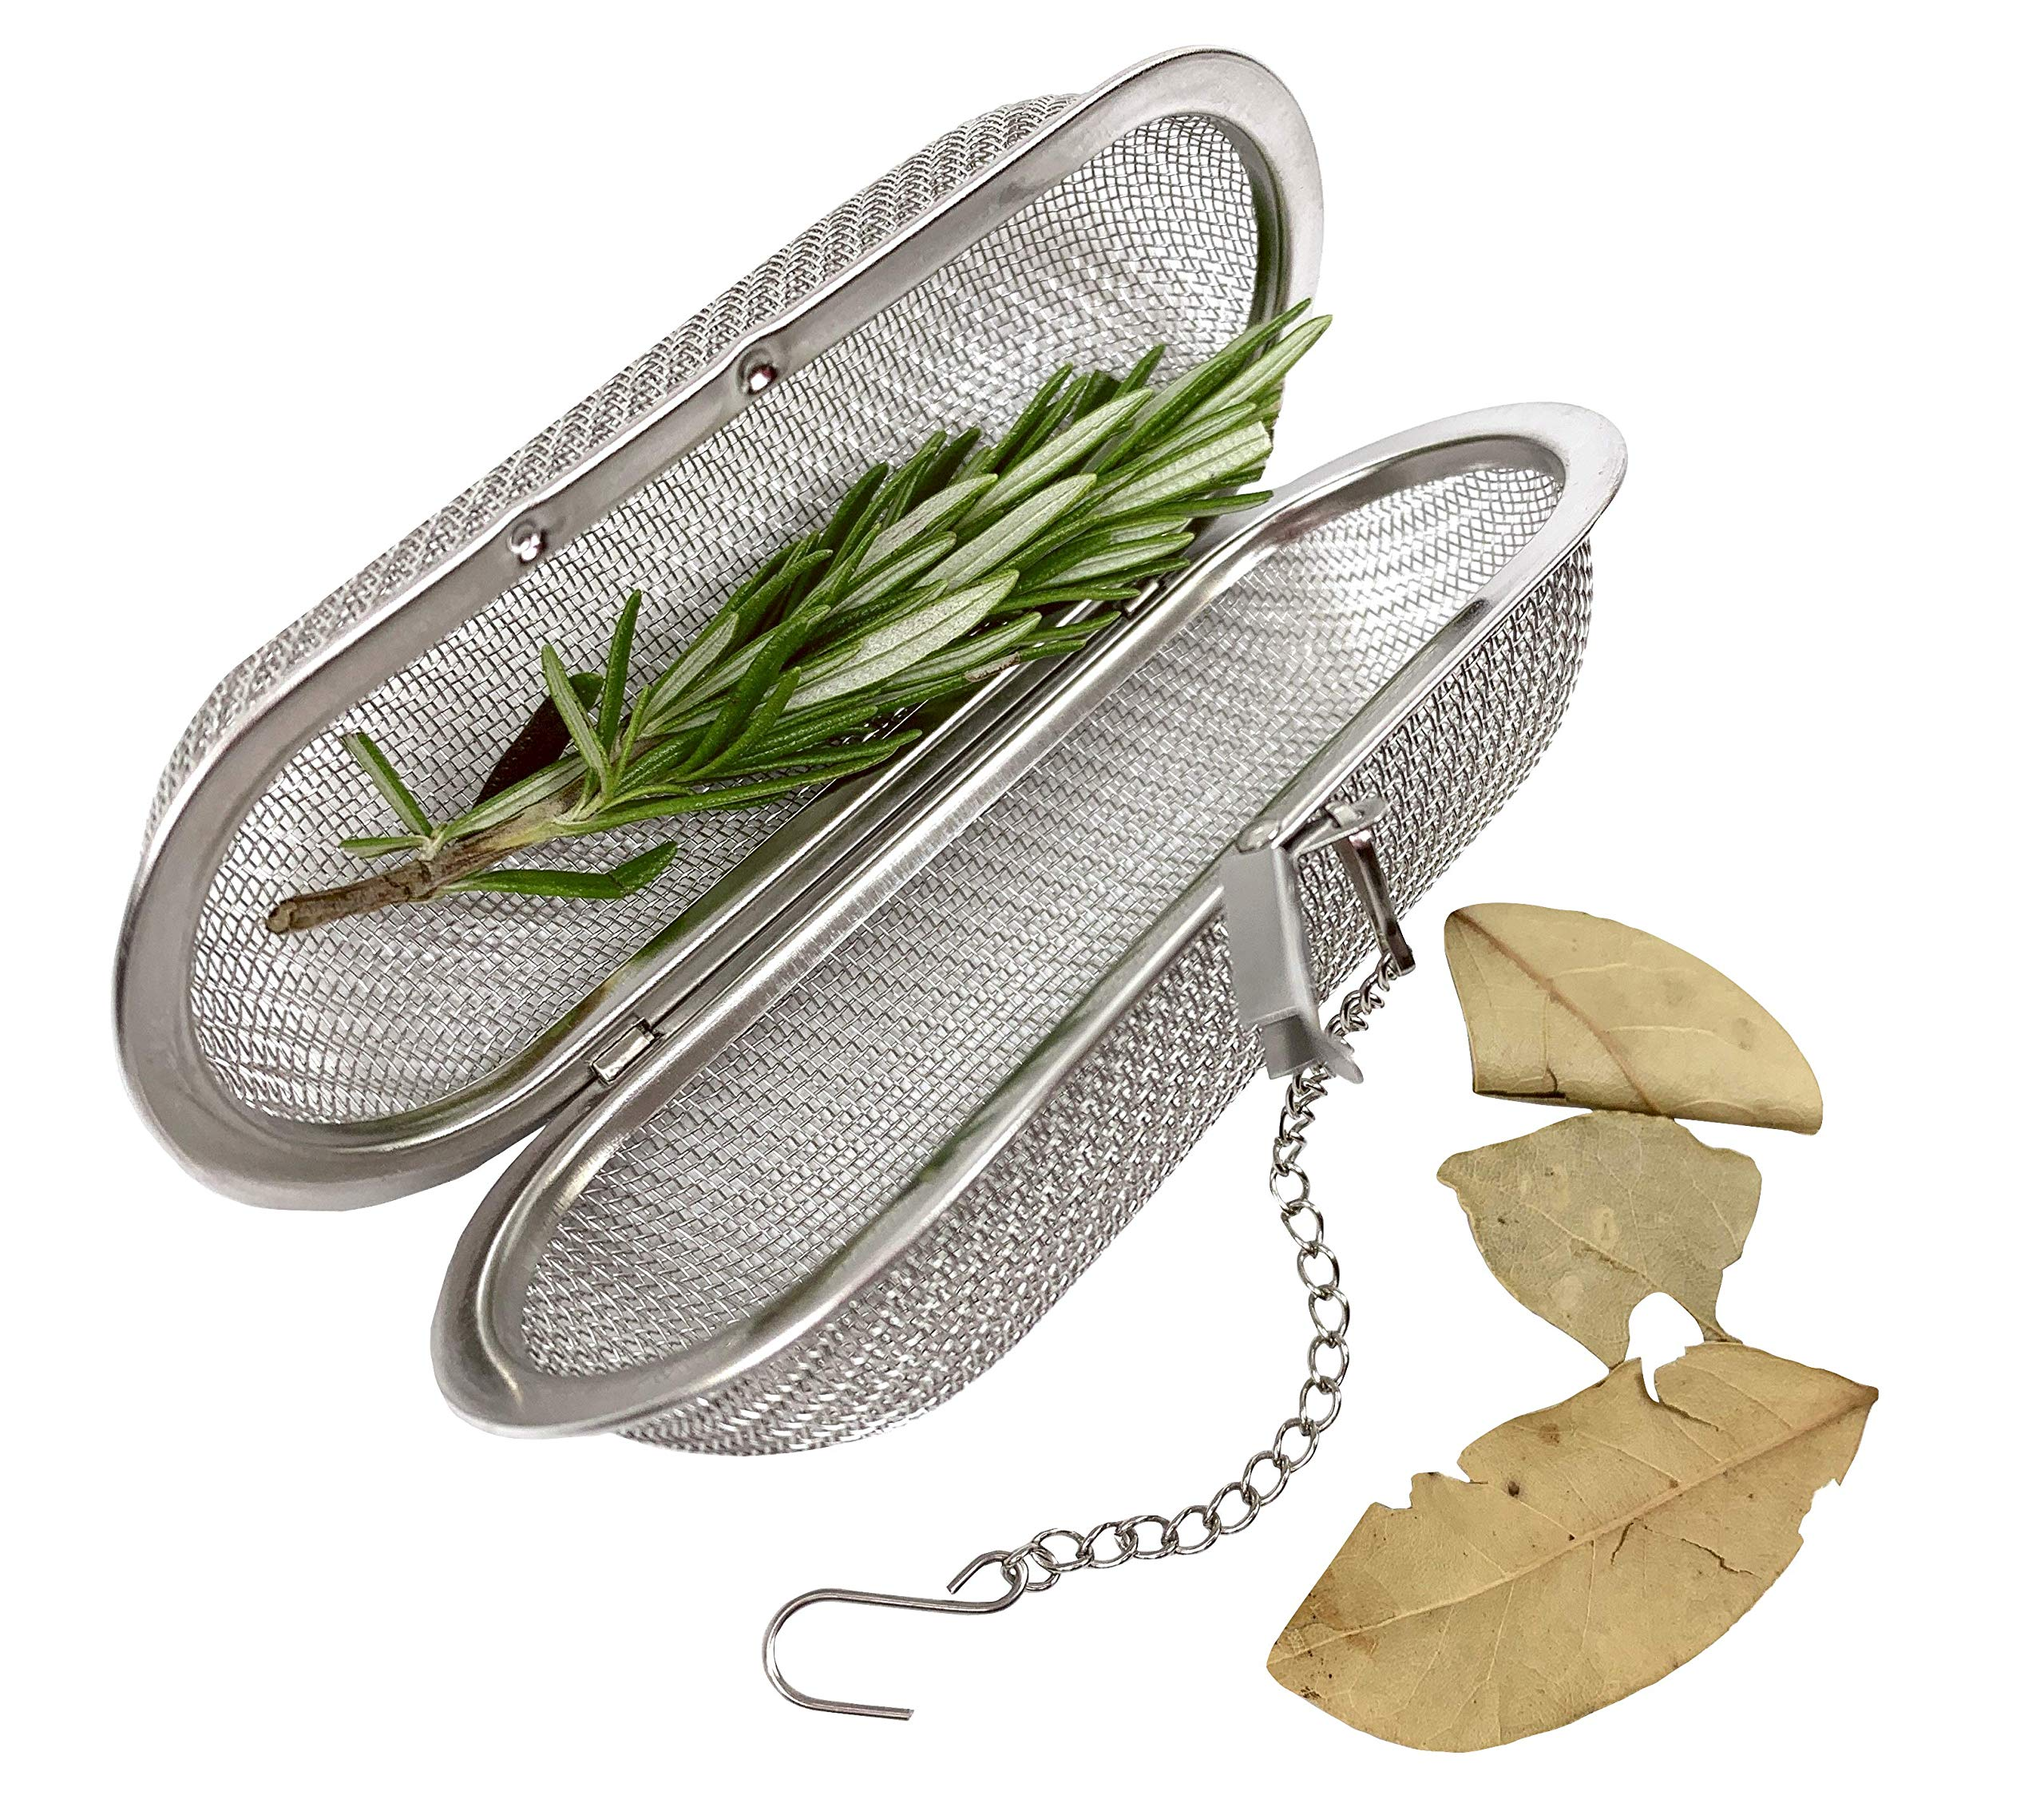 Large Stainless Steel Herb and Spice Infuser for Cooking